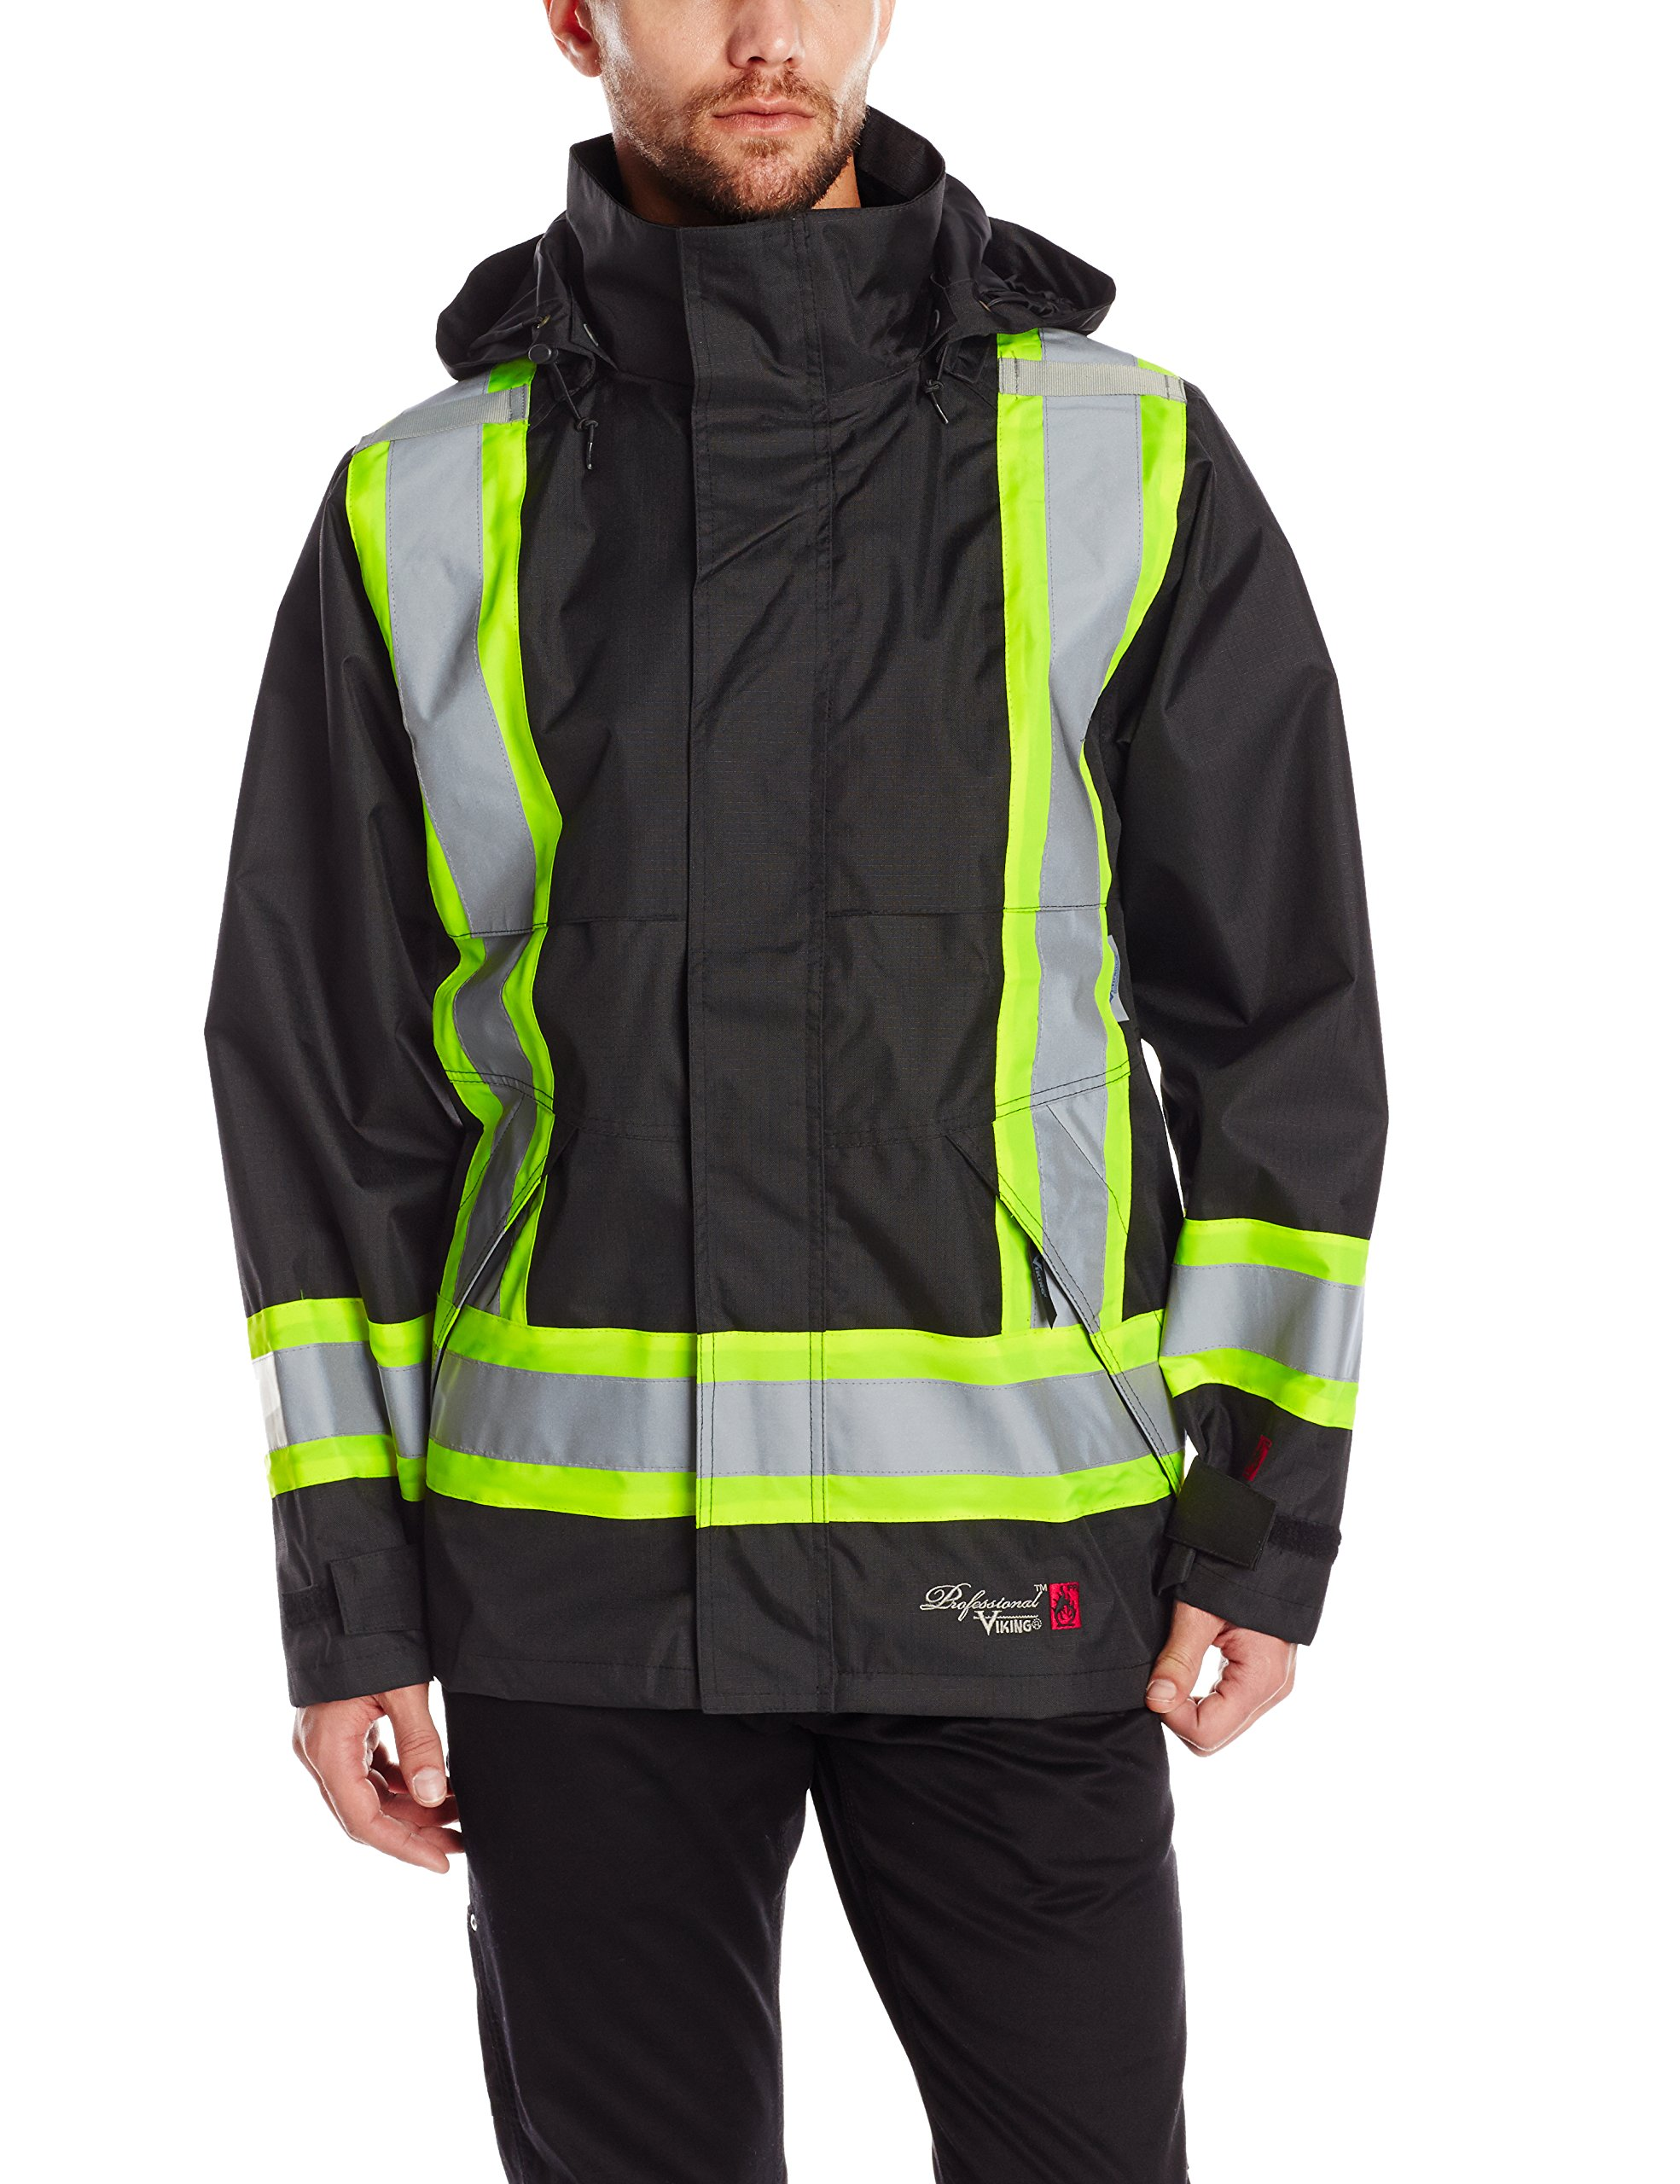 Viking Professional Journeyman FR Waterproof Flame Resistant Jacket, Black, 2XL by Viking